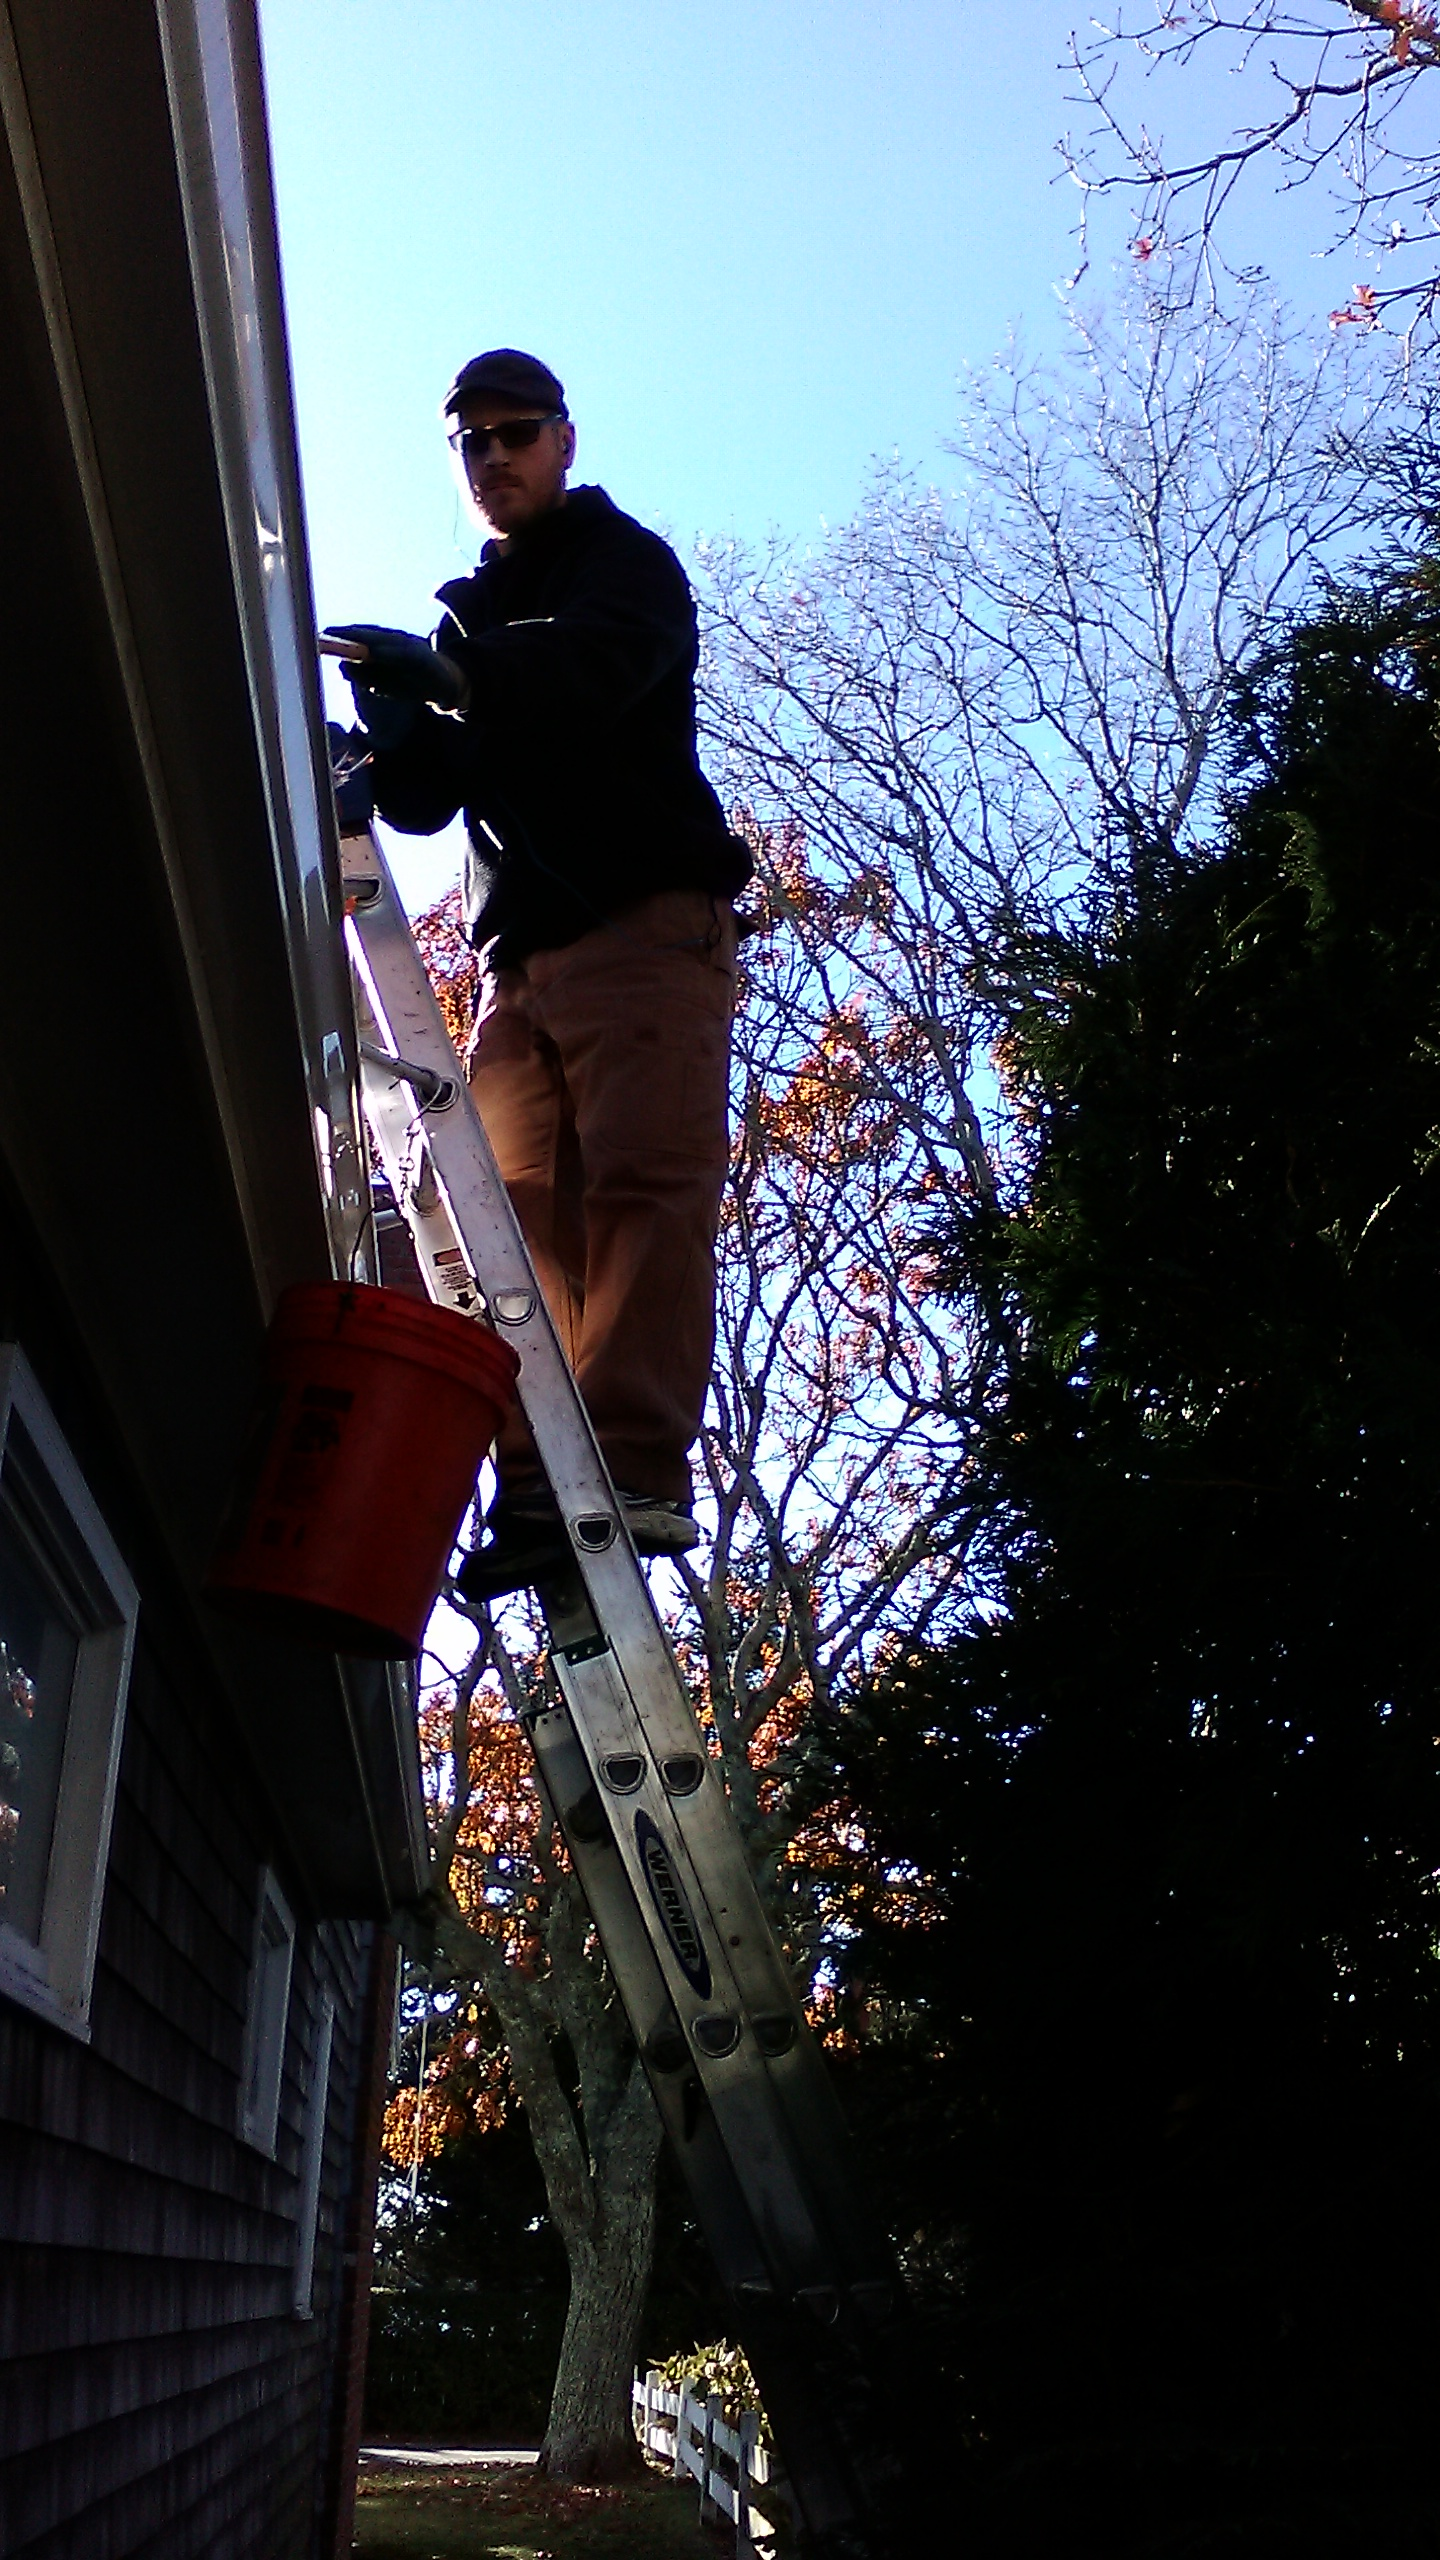 Gutter cleaning, Marion Ma